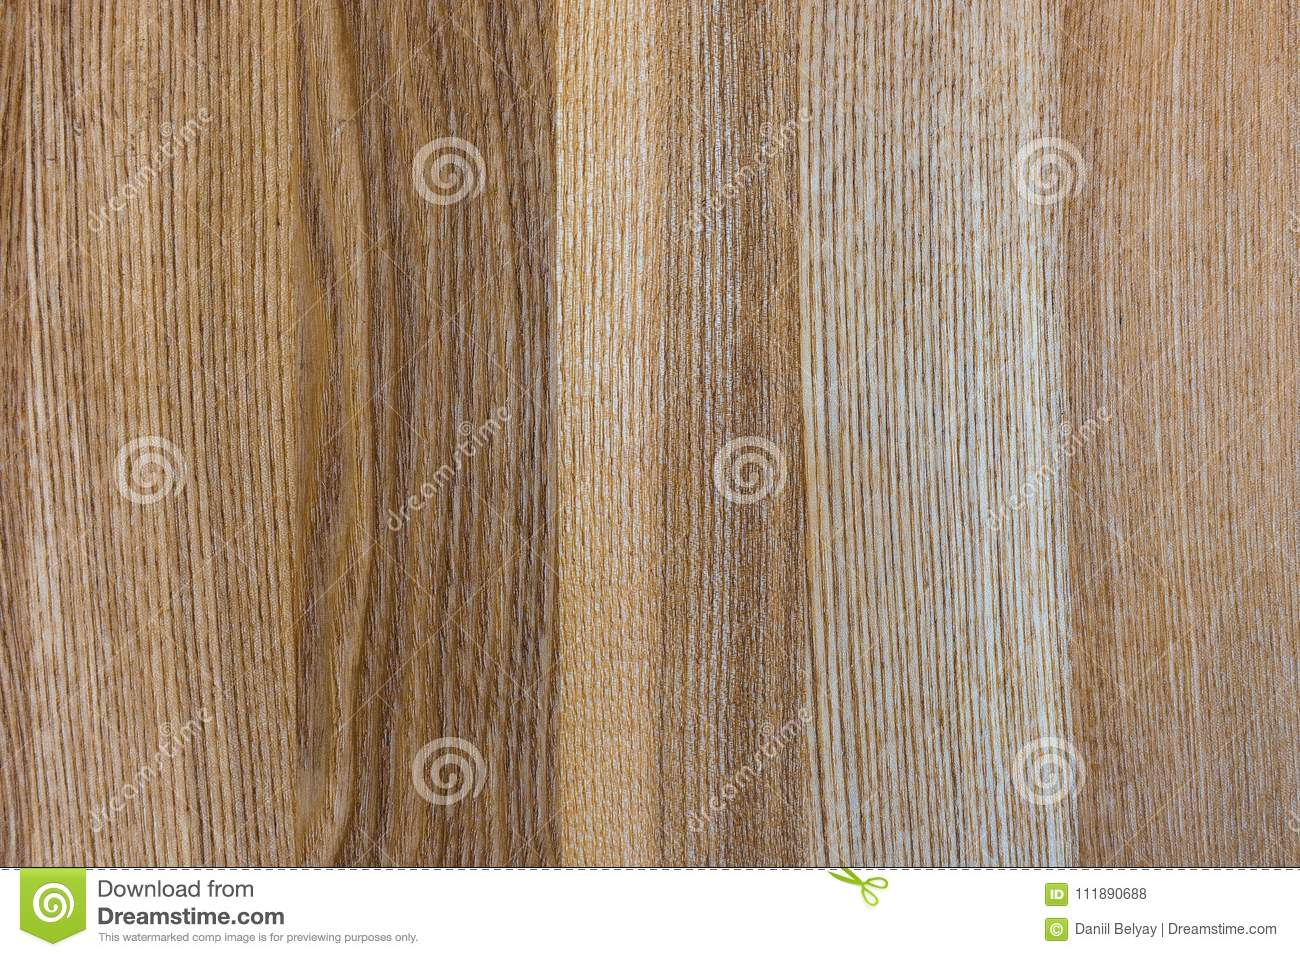 oak wood flooring texture. Download The Texture Of Wood. Flooring. Oak Stock Photo - Image Of  Hardwood Oak Wood Flooring Texture